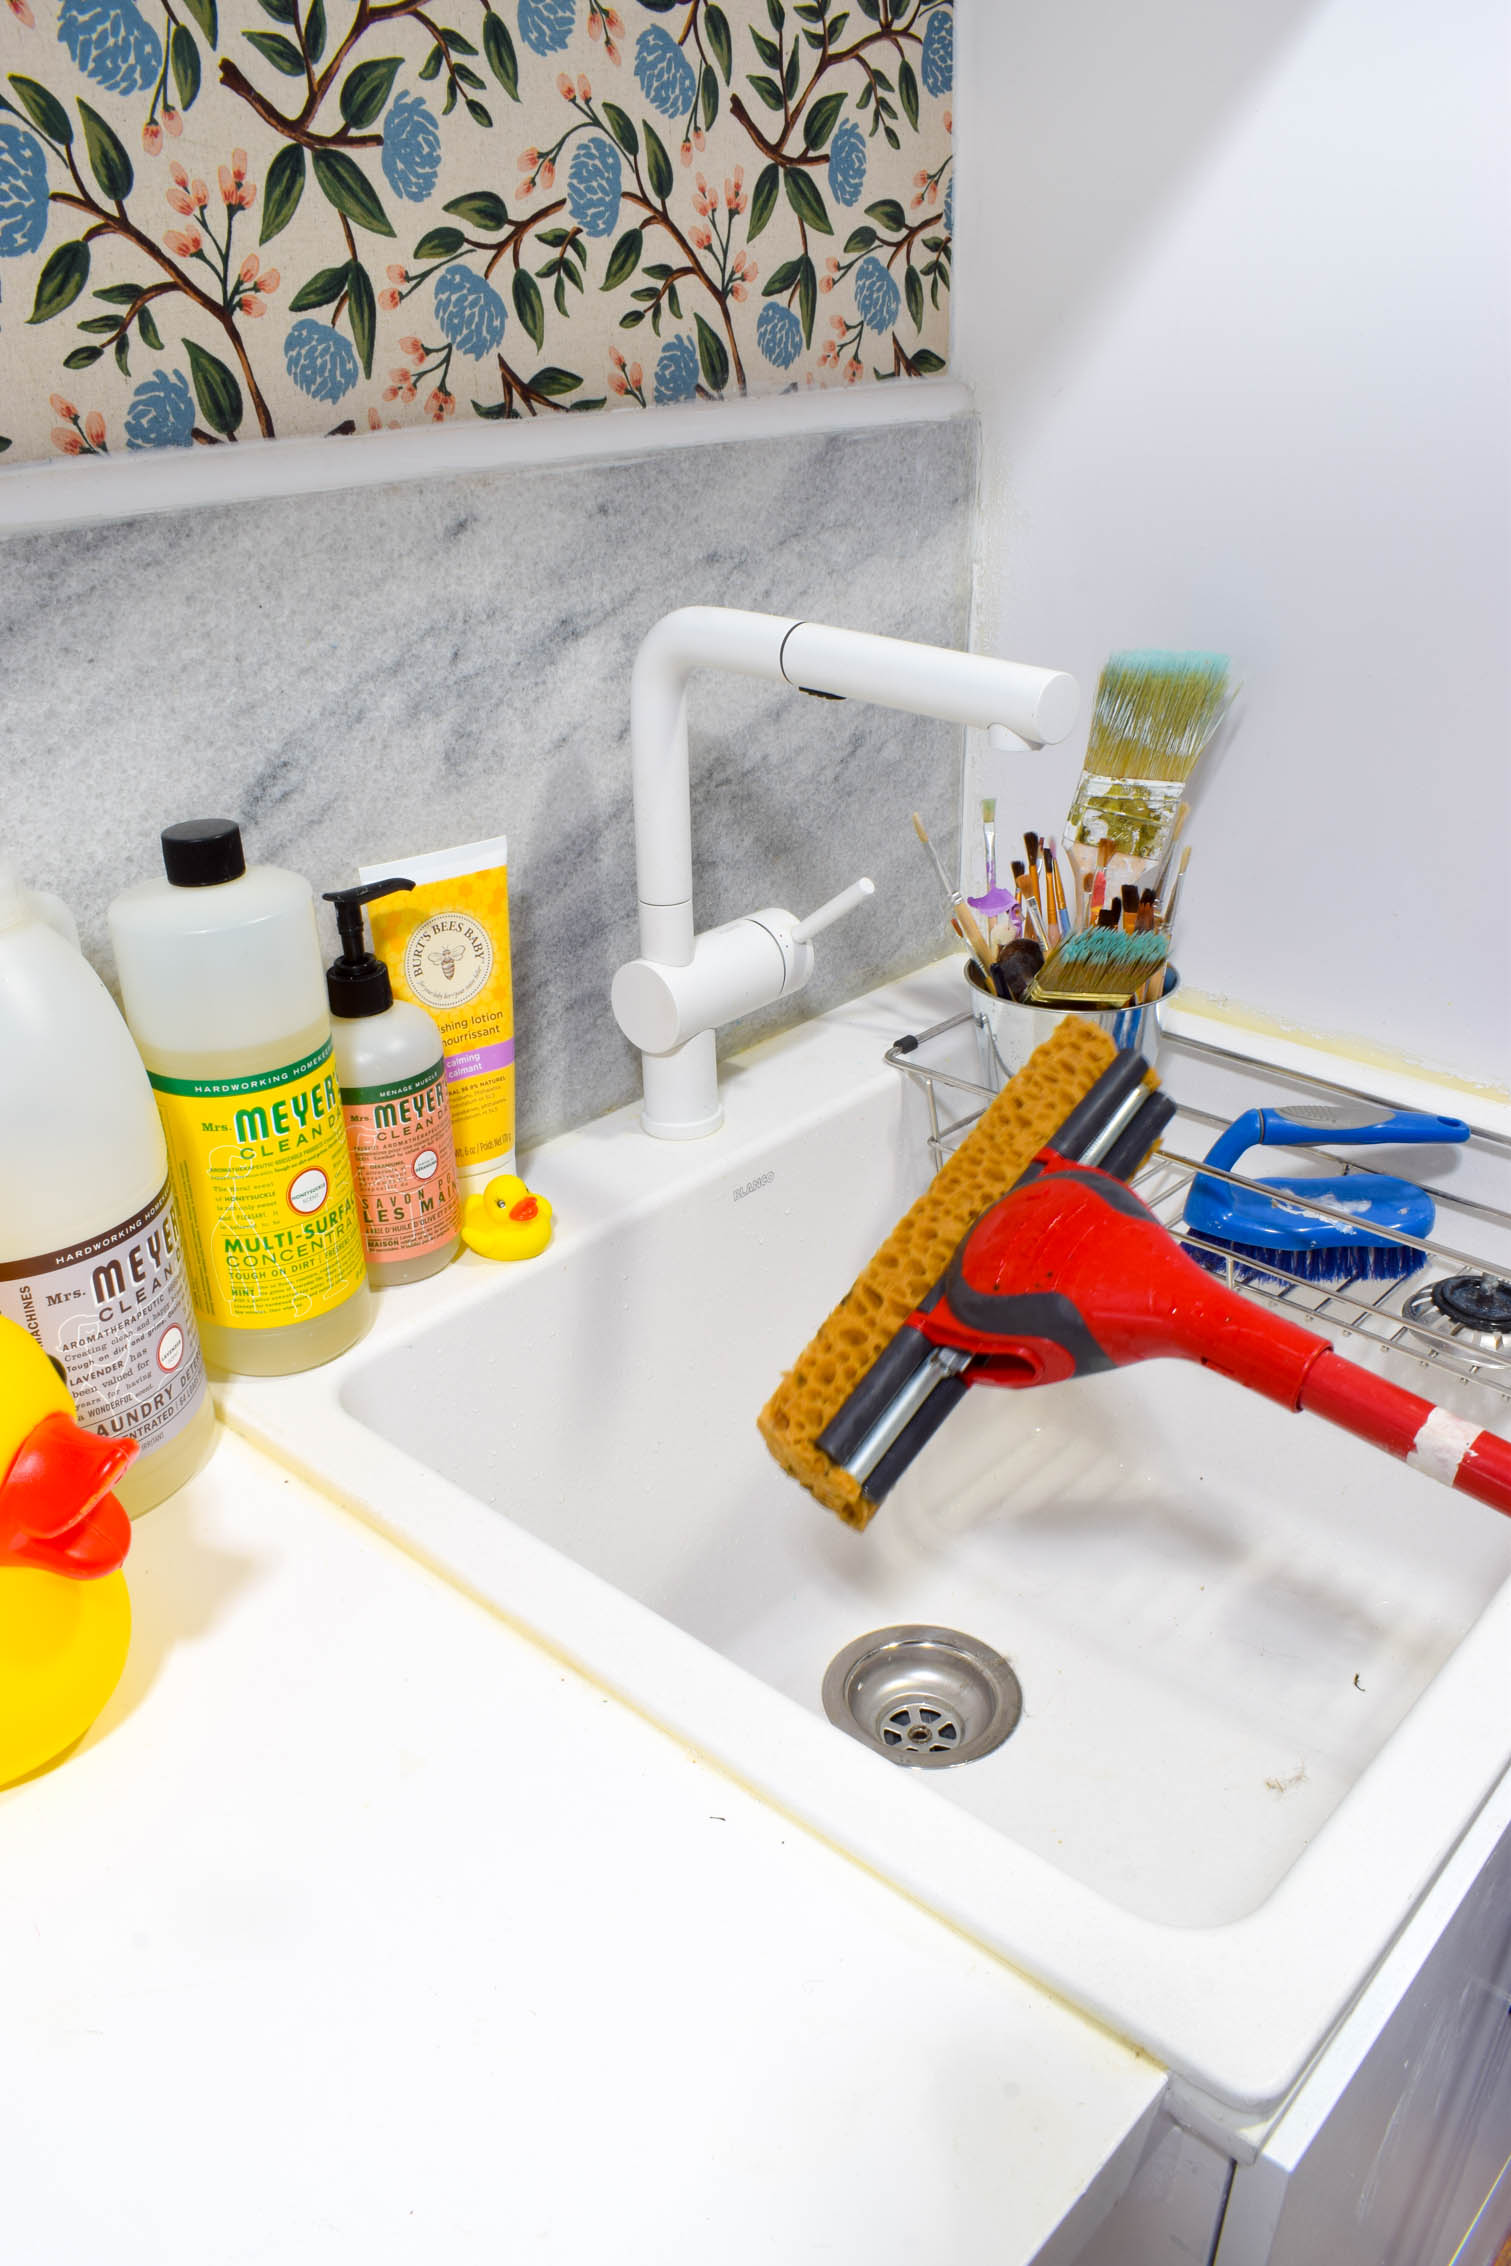 We've got the BLANCO LIVEN Laundry sink in our home, and love it. Combined with the POSH faucet, we can do just about anything a sink to do!